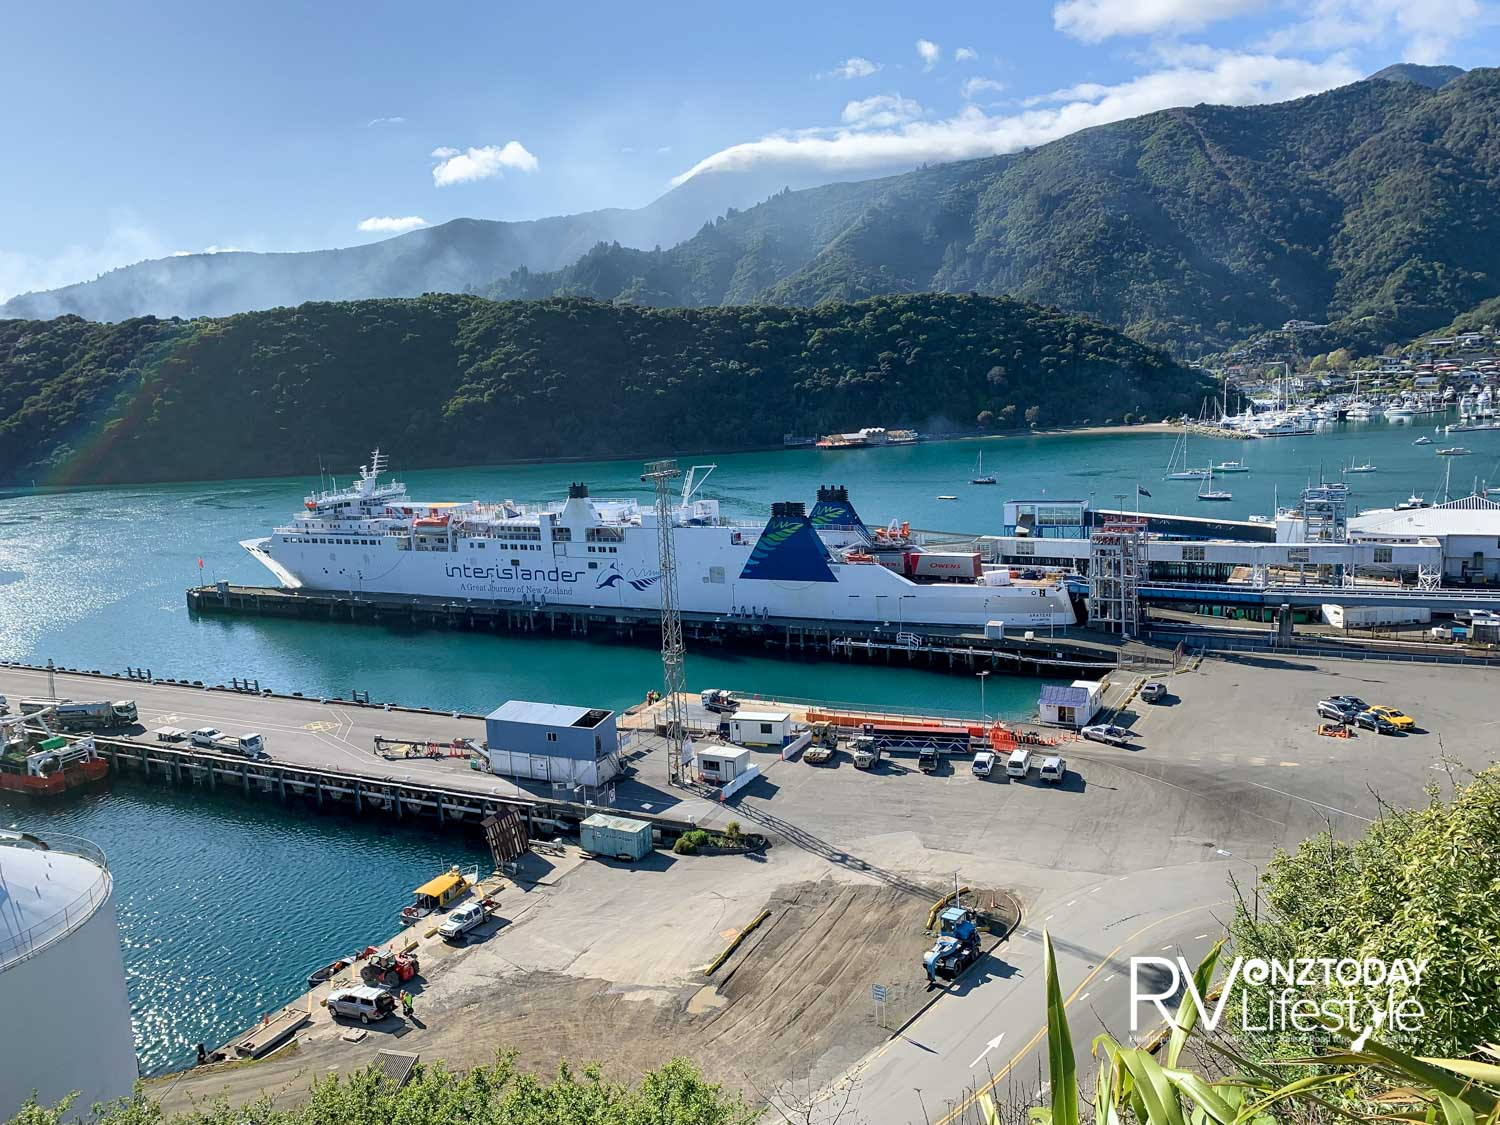 Picton harbour with a ferry waiting